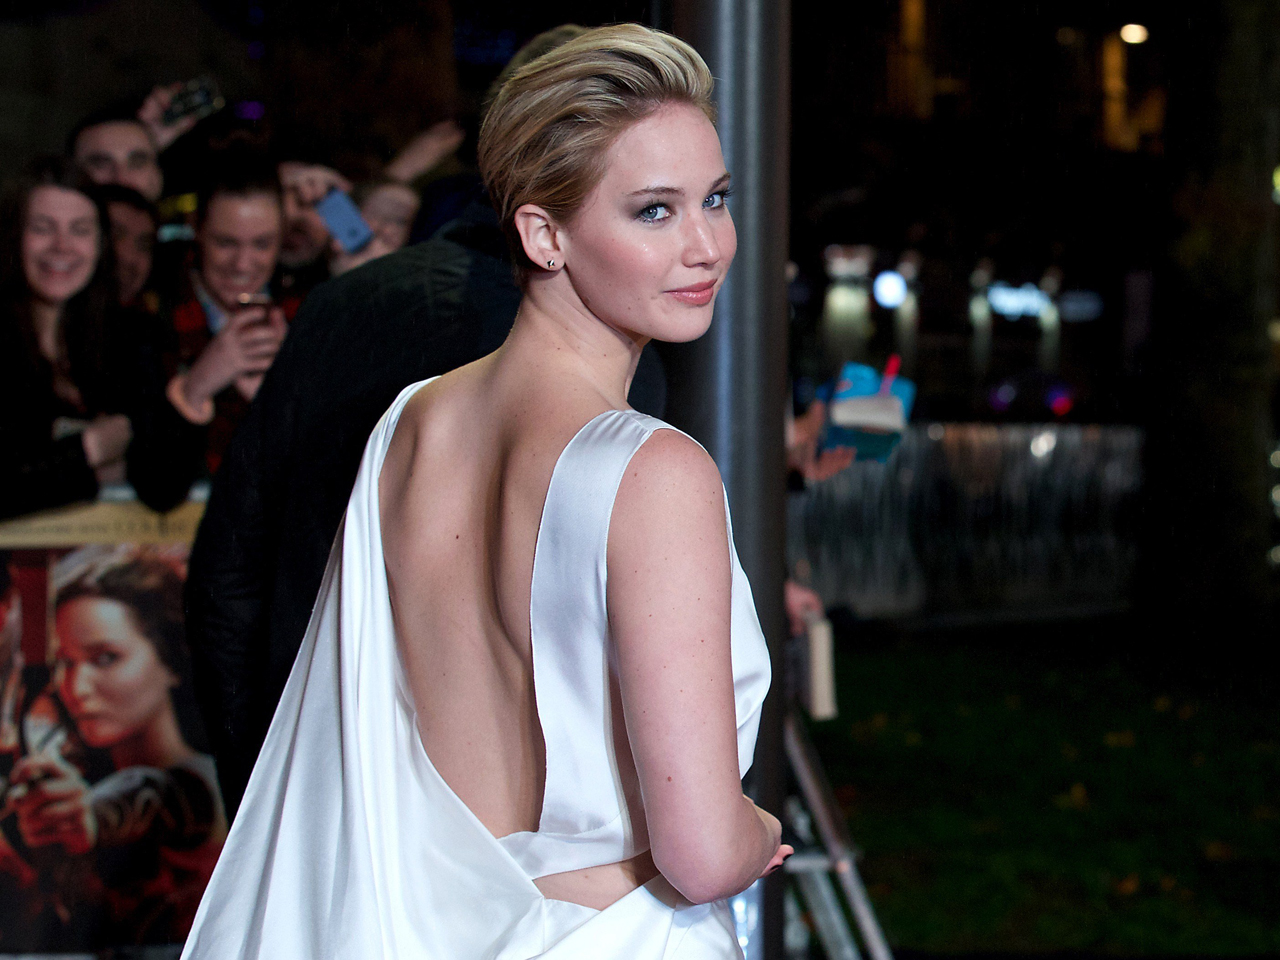 Jennifer Lawrence Leaves Red Carpet To Comfort Fan In Wheelchair - Todaycom-5330